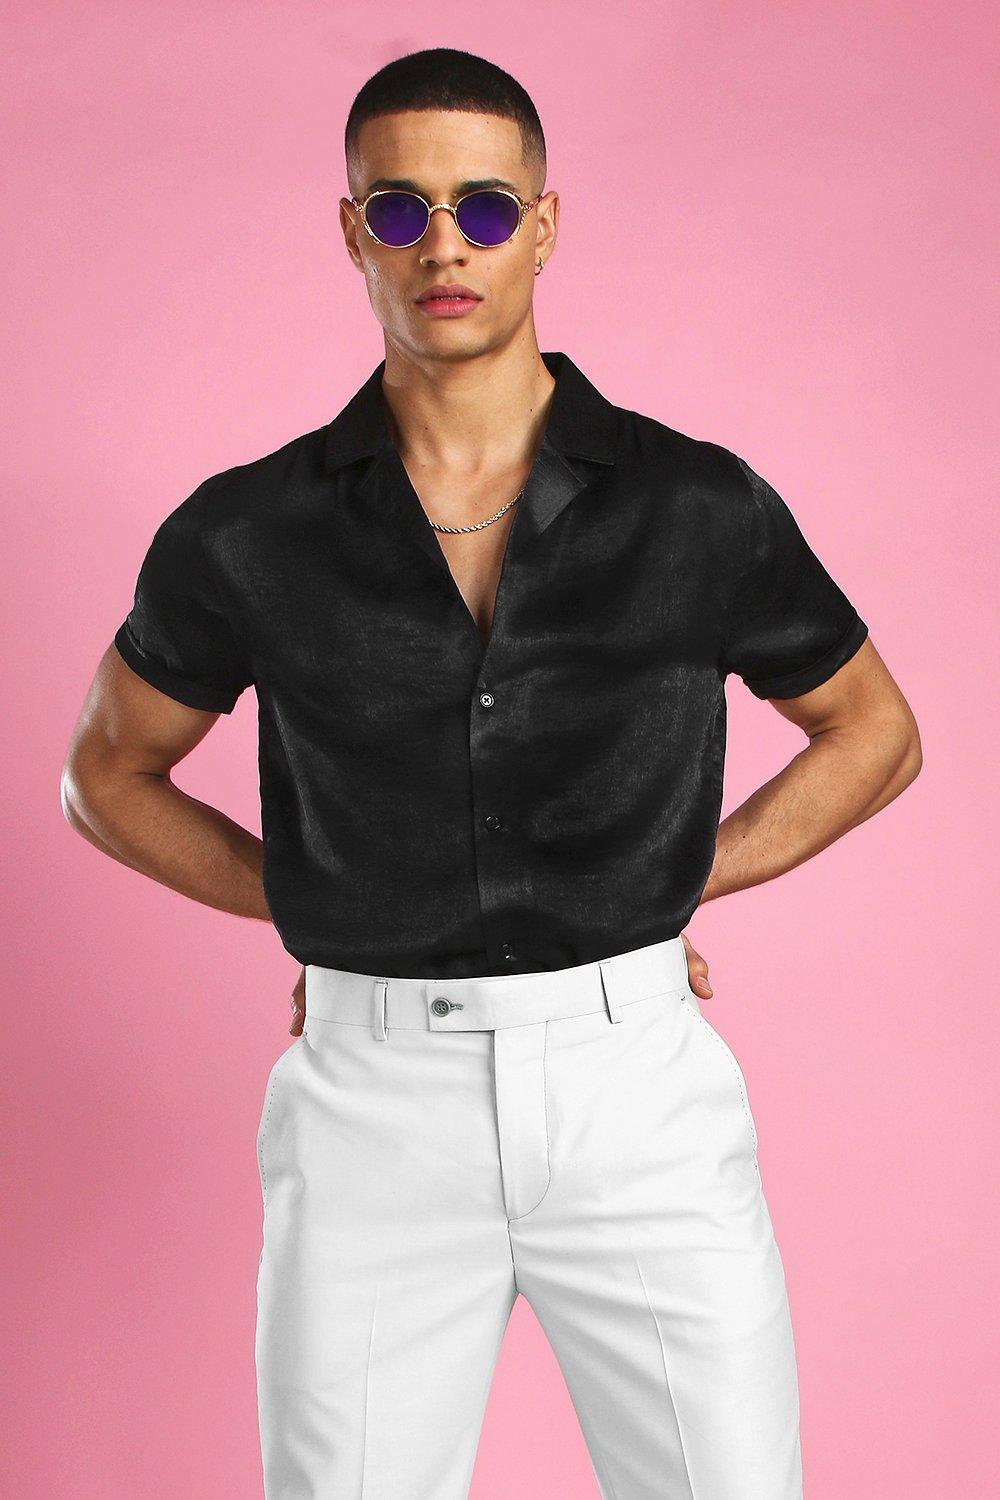 60s 70s Men's Clothing UK | Shirts, Trousers, Shoes Mens Short Sleeve Revere Collar Satin Party Shirt - Black $17.50 AT vintagedancer.com